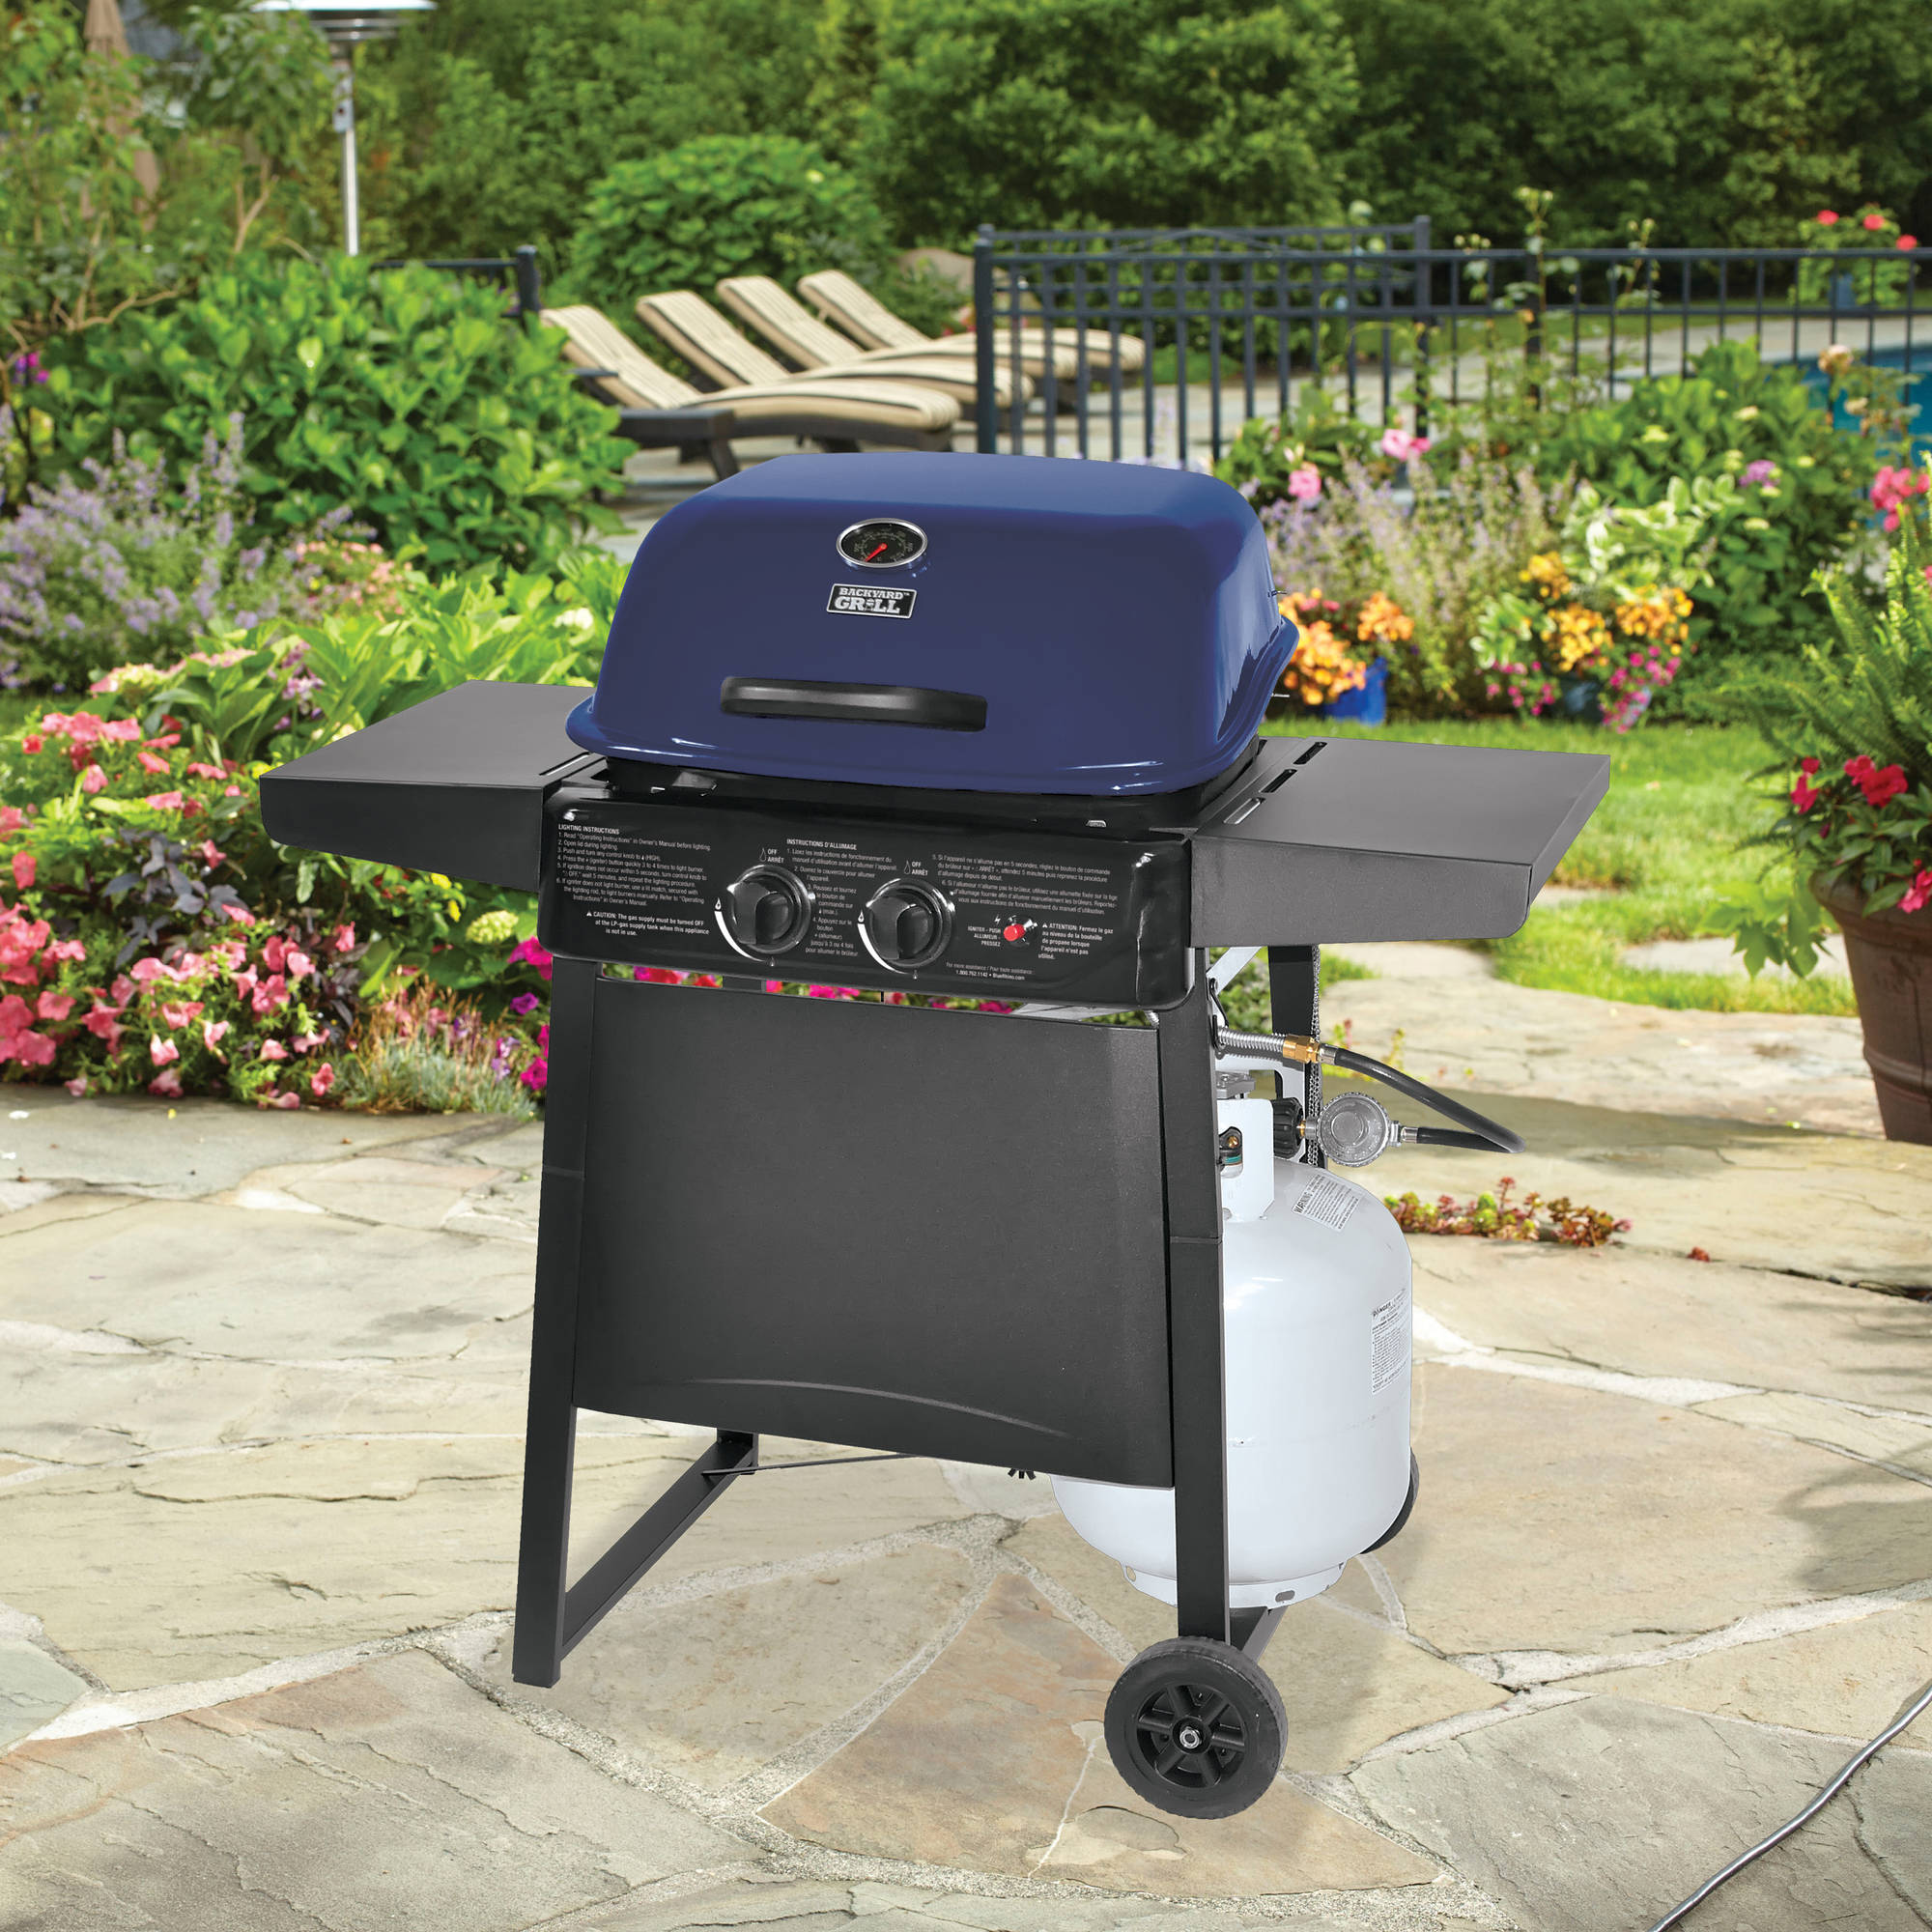 Walmart Electric Grills Outdoor ~ Walmart lp burner gas grill blue